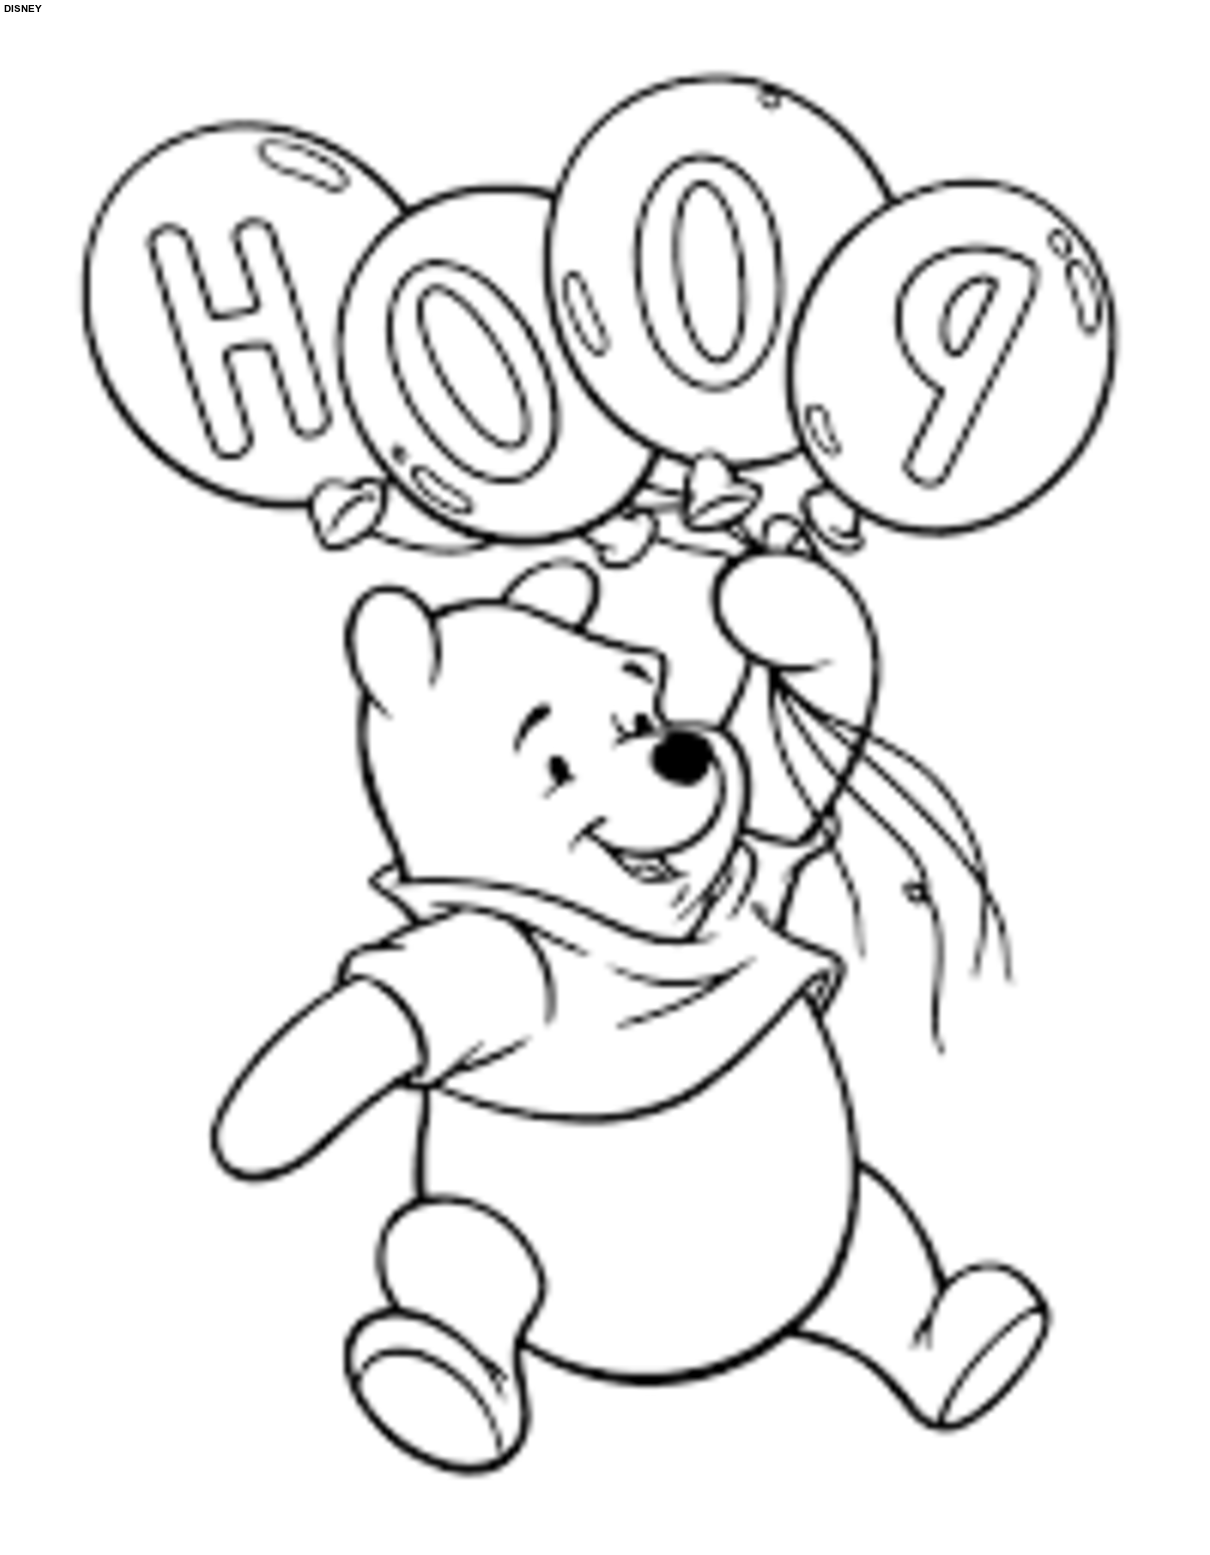 disney colouring pages cartoon characters coloring pages for boy